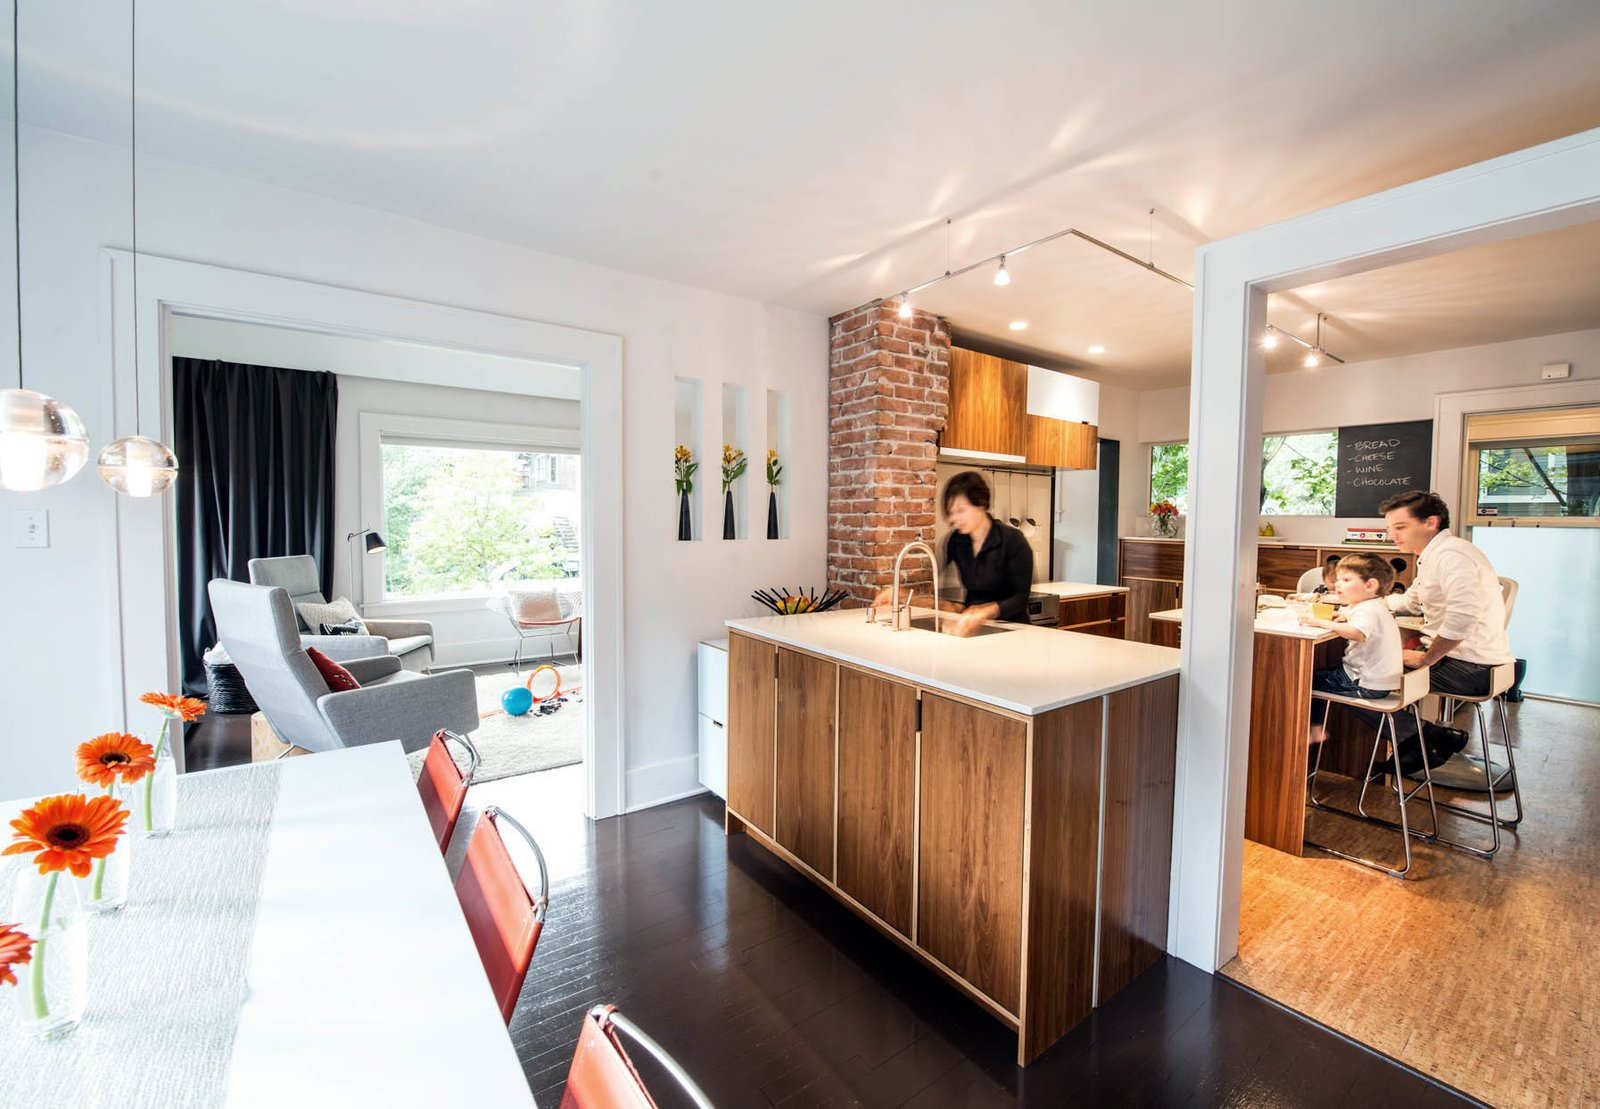 Architects Sara and Jeremy Imhoff and their son Jonah use the renovated kitchen in their 1918 bungalow in Seattle's Fremont neighborhood.